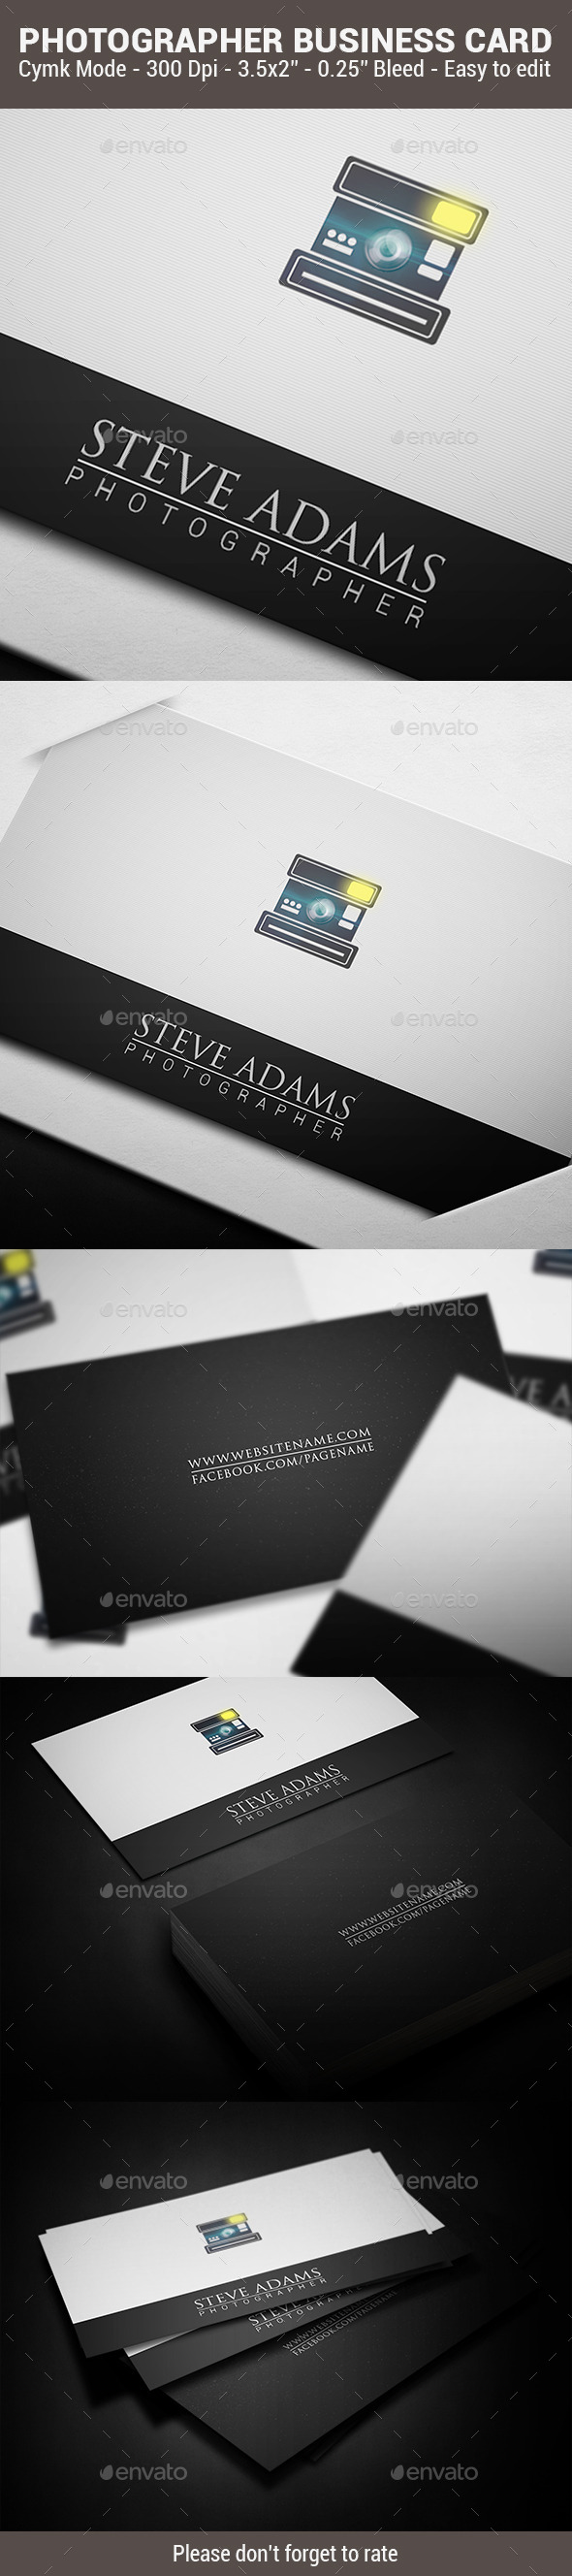 GraphicRiver Photographer Business Card 10695545